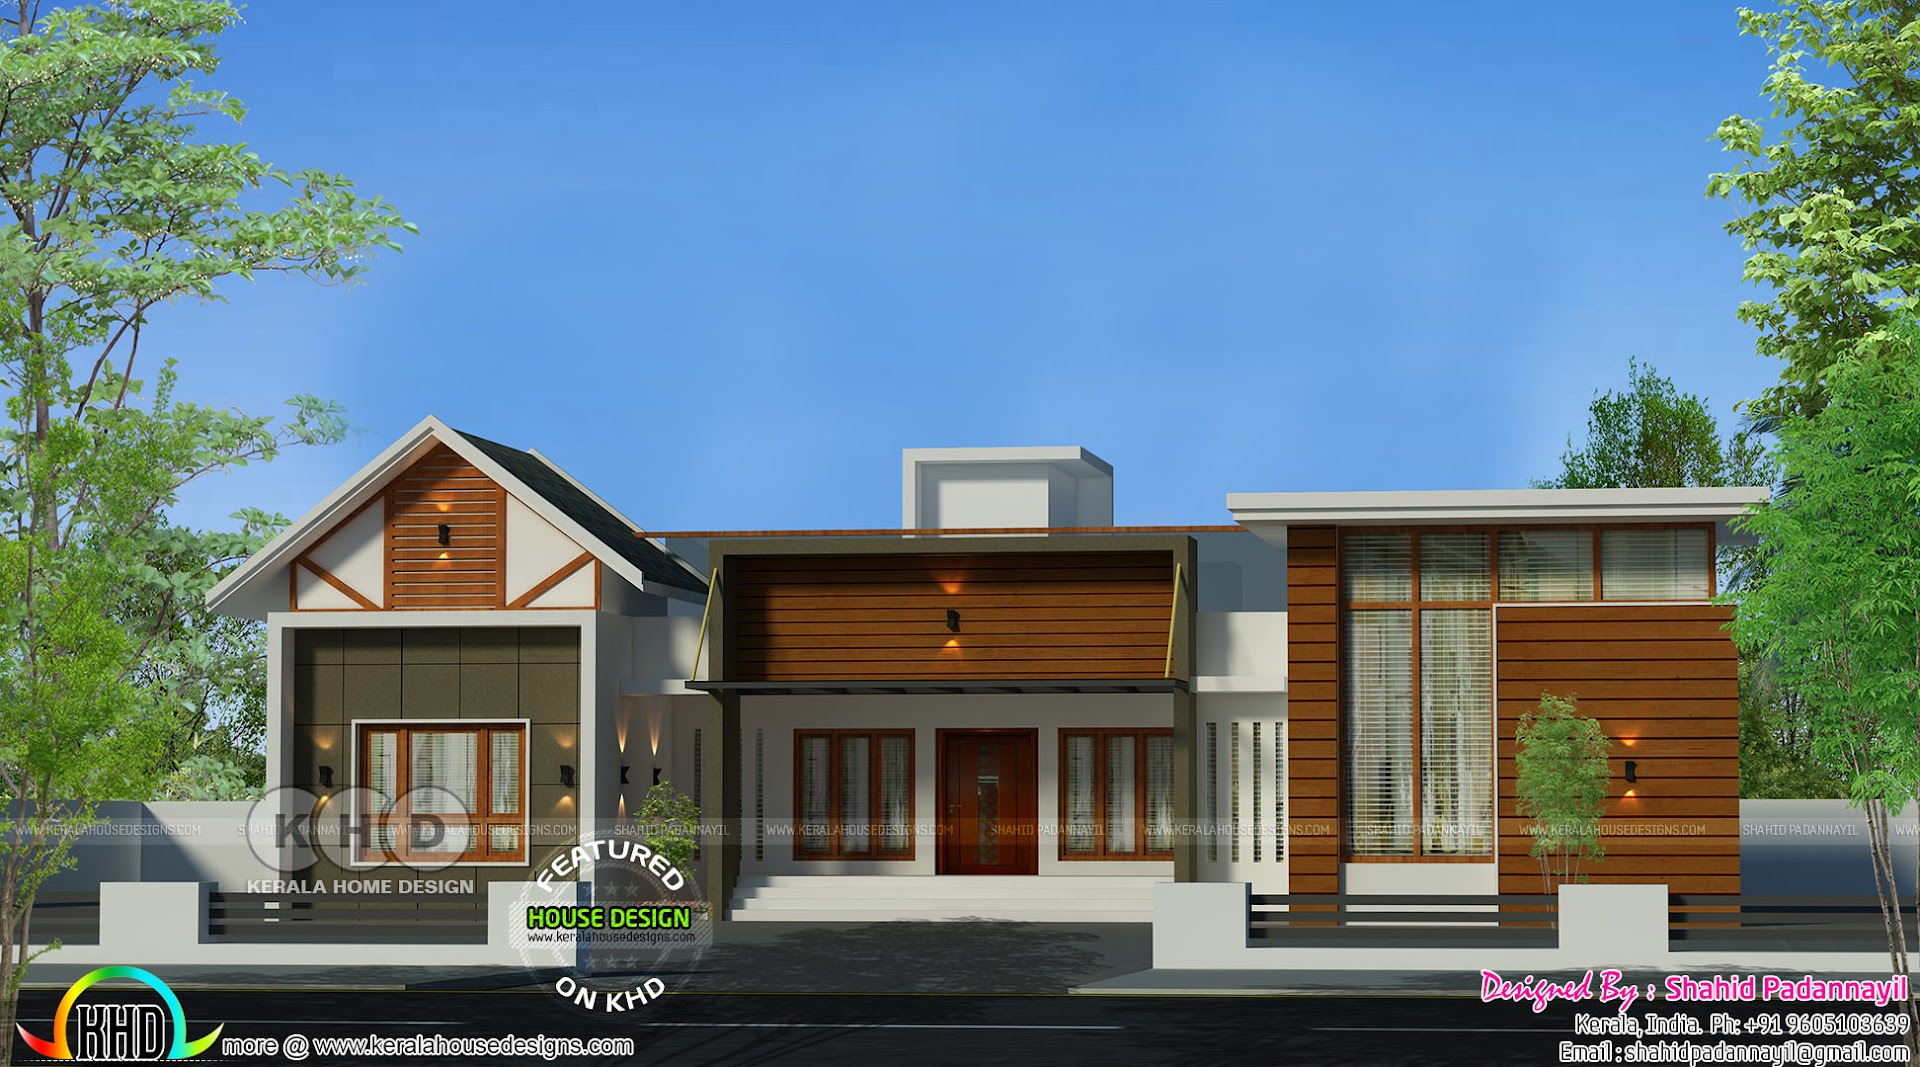 4 Bedroom Mixed Roof Home Part - 19: Mixed Roof Modern 4 Bedroom Single Storied Home